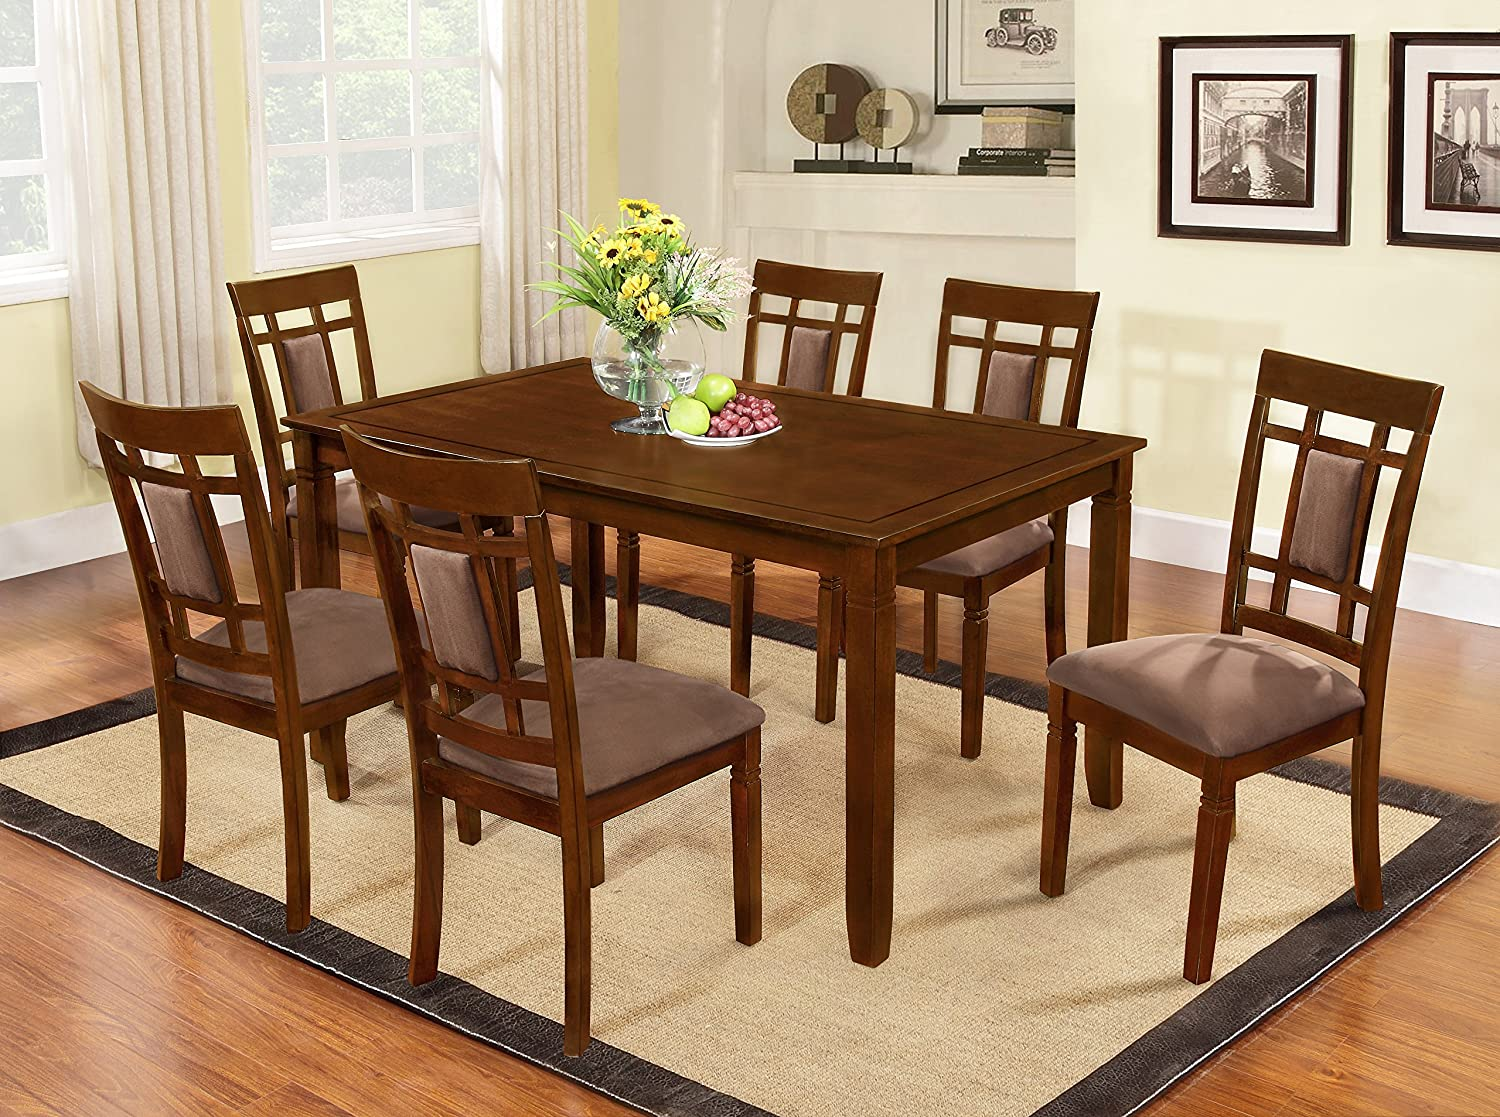 amazoncom the room style 7 piece cherry finish solid wood dining table set table chair sets